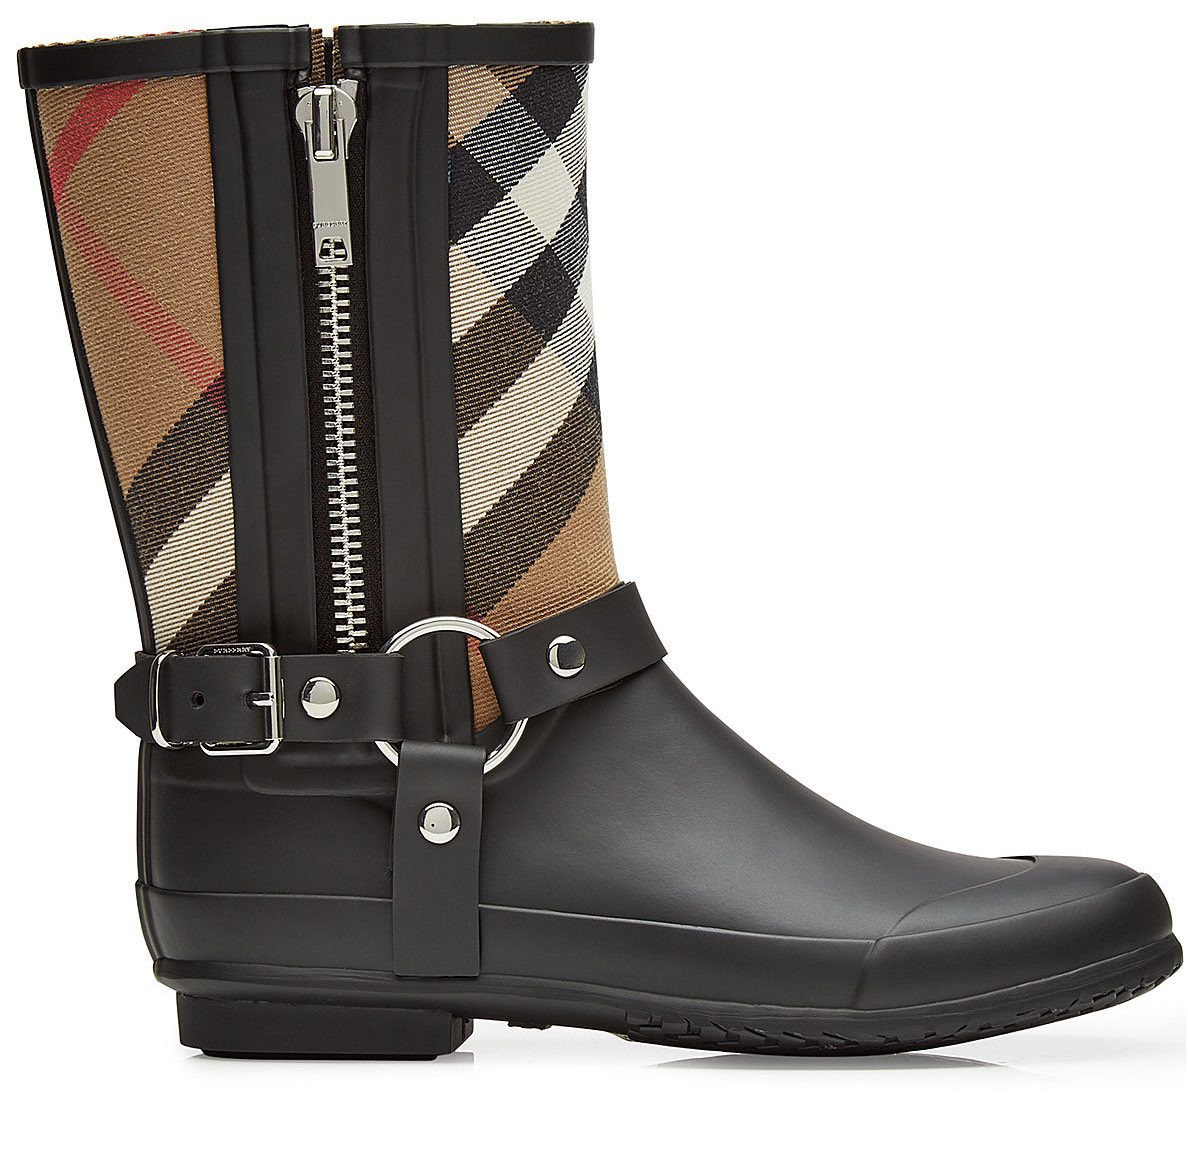 burberry-rain-boots-classic-never-go-out-of-style-fashion-classis